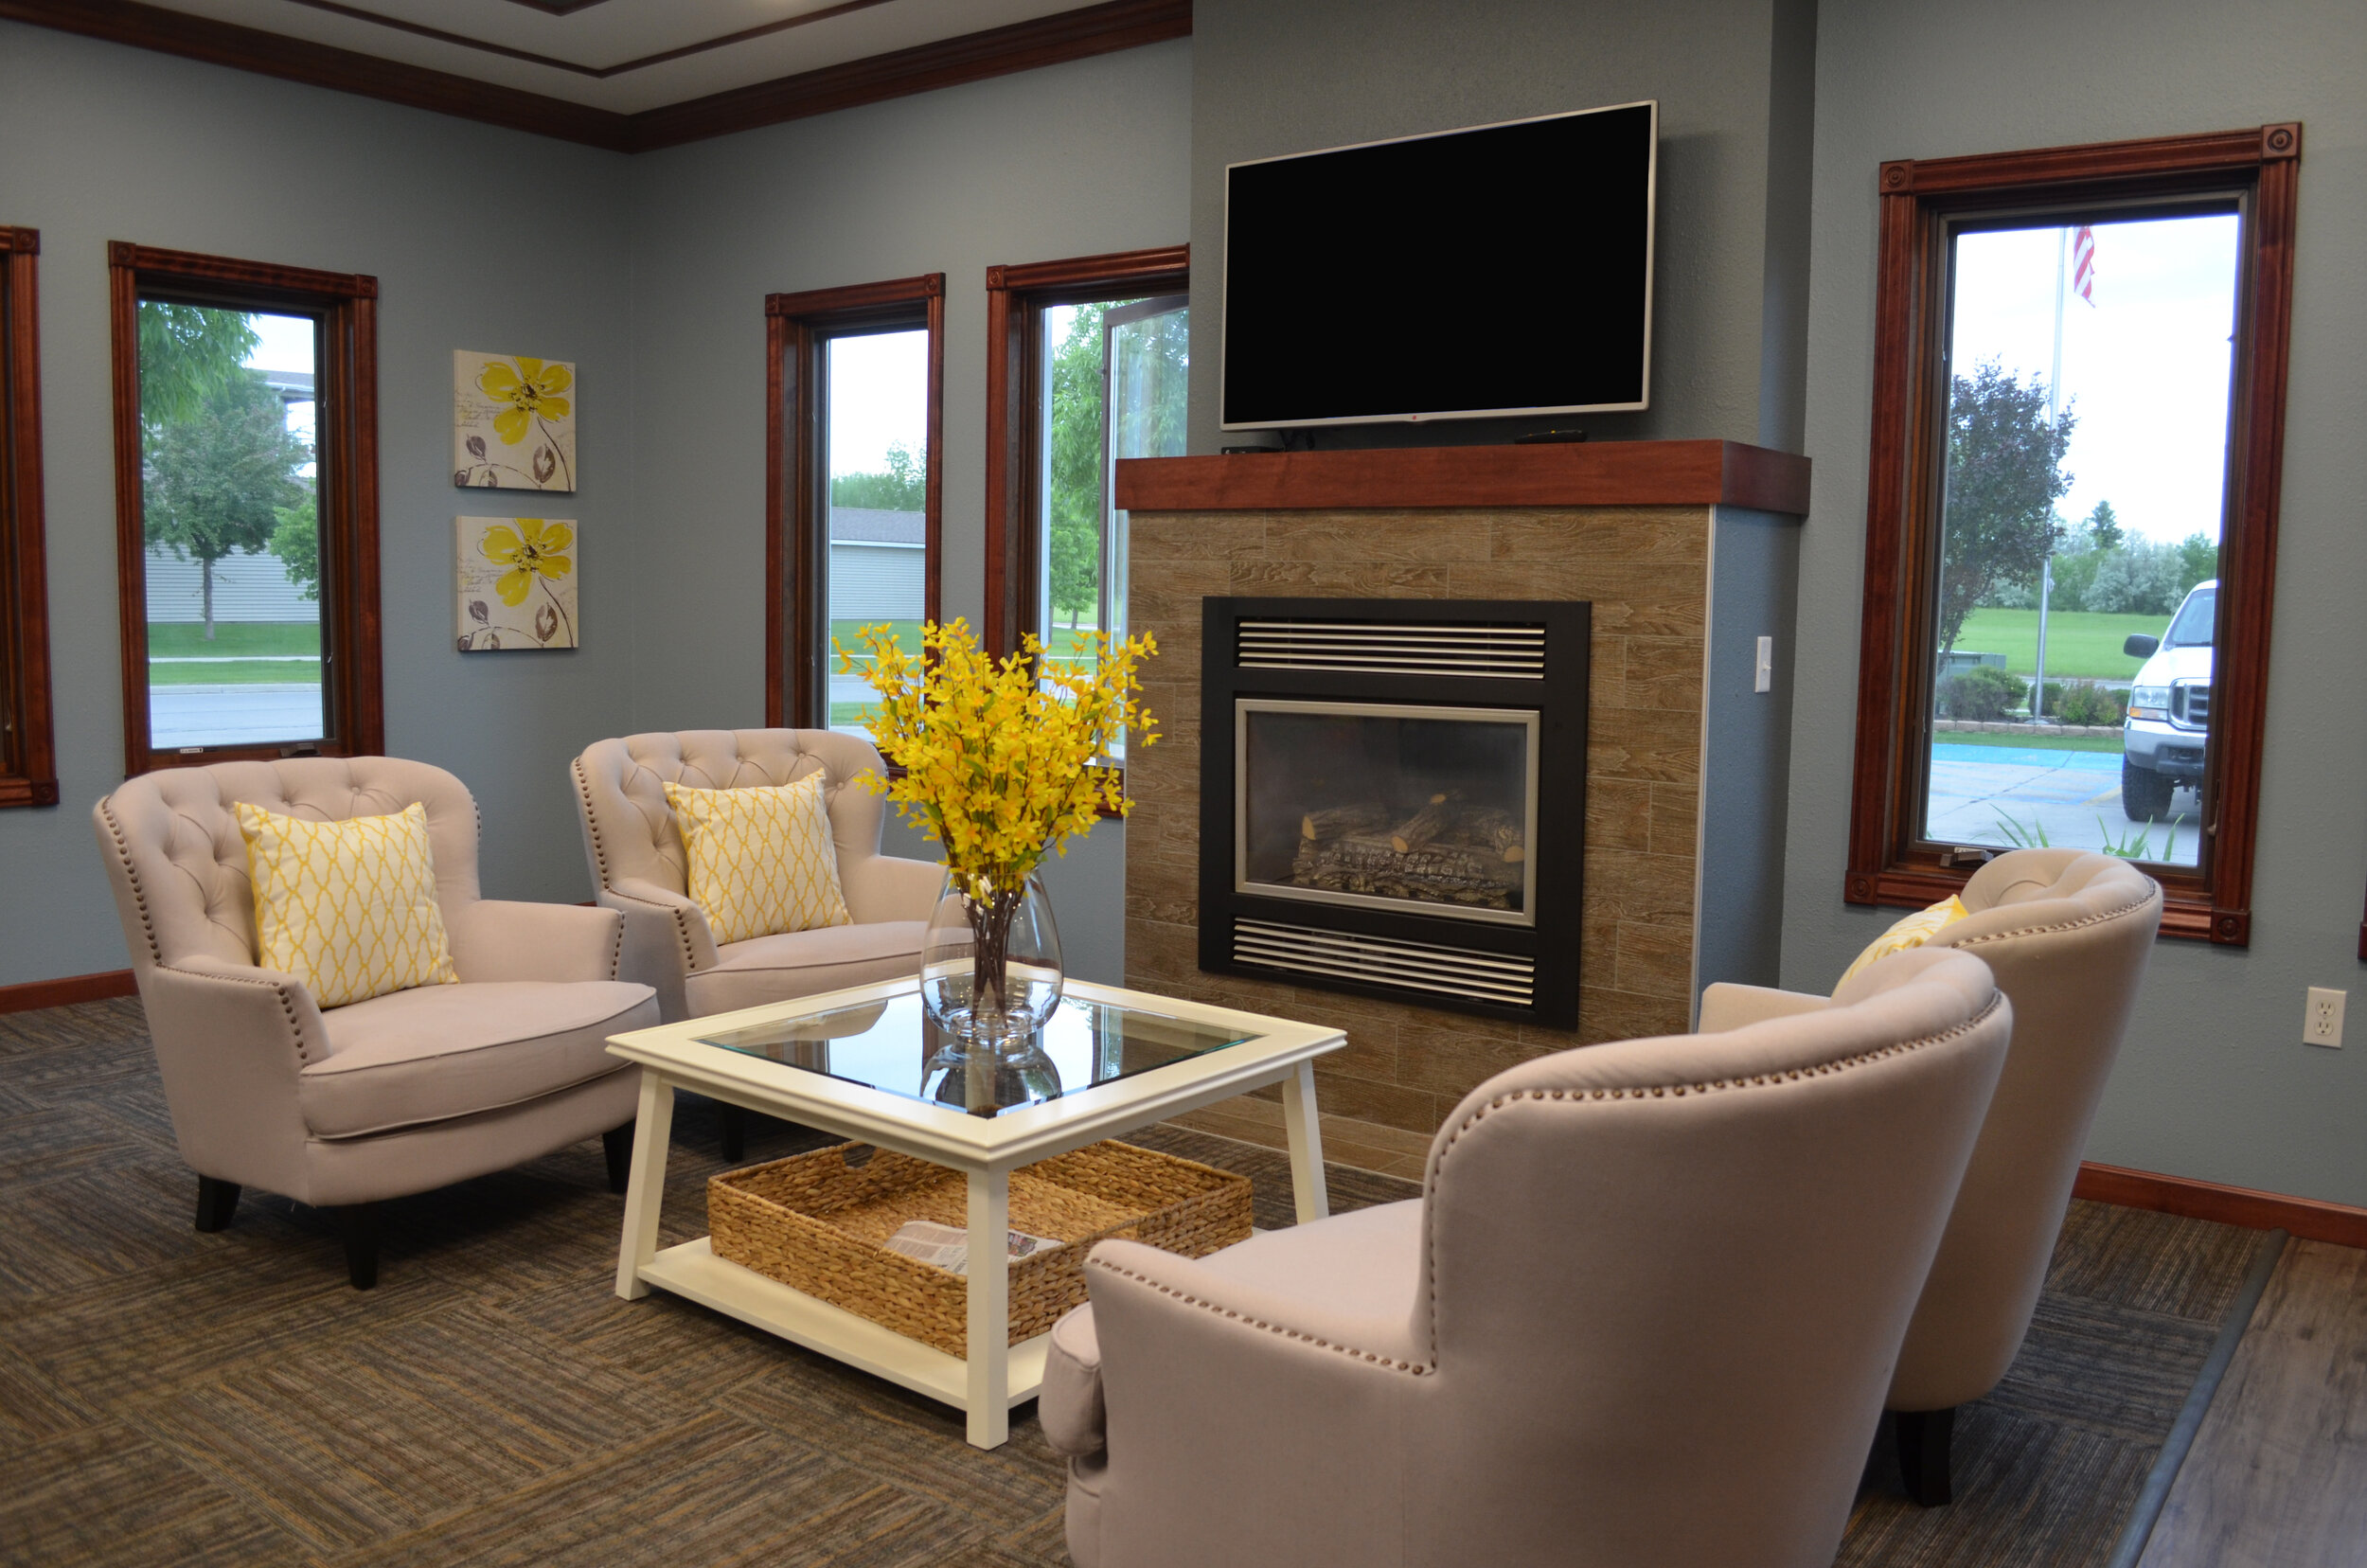 Relax with a Book or with a Friend by the Fireplace